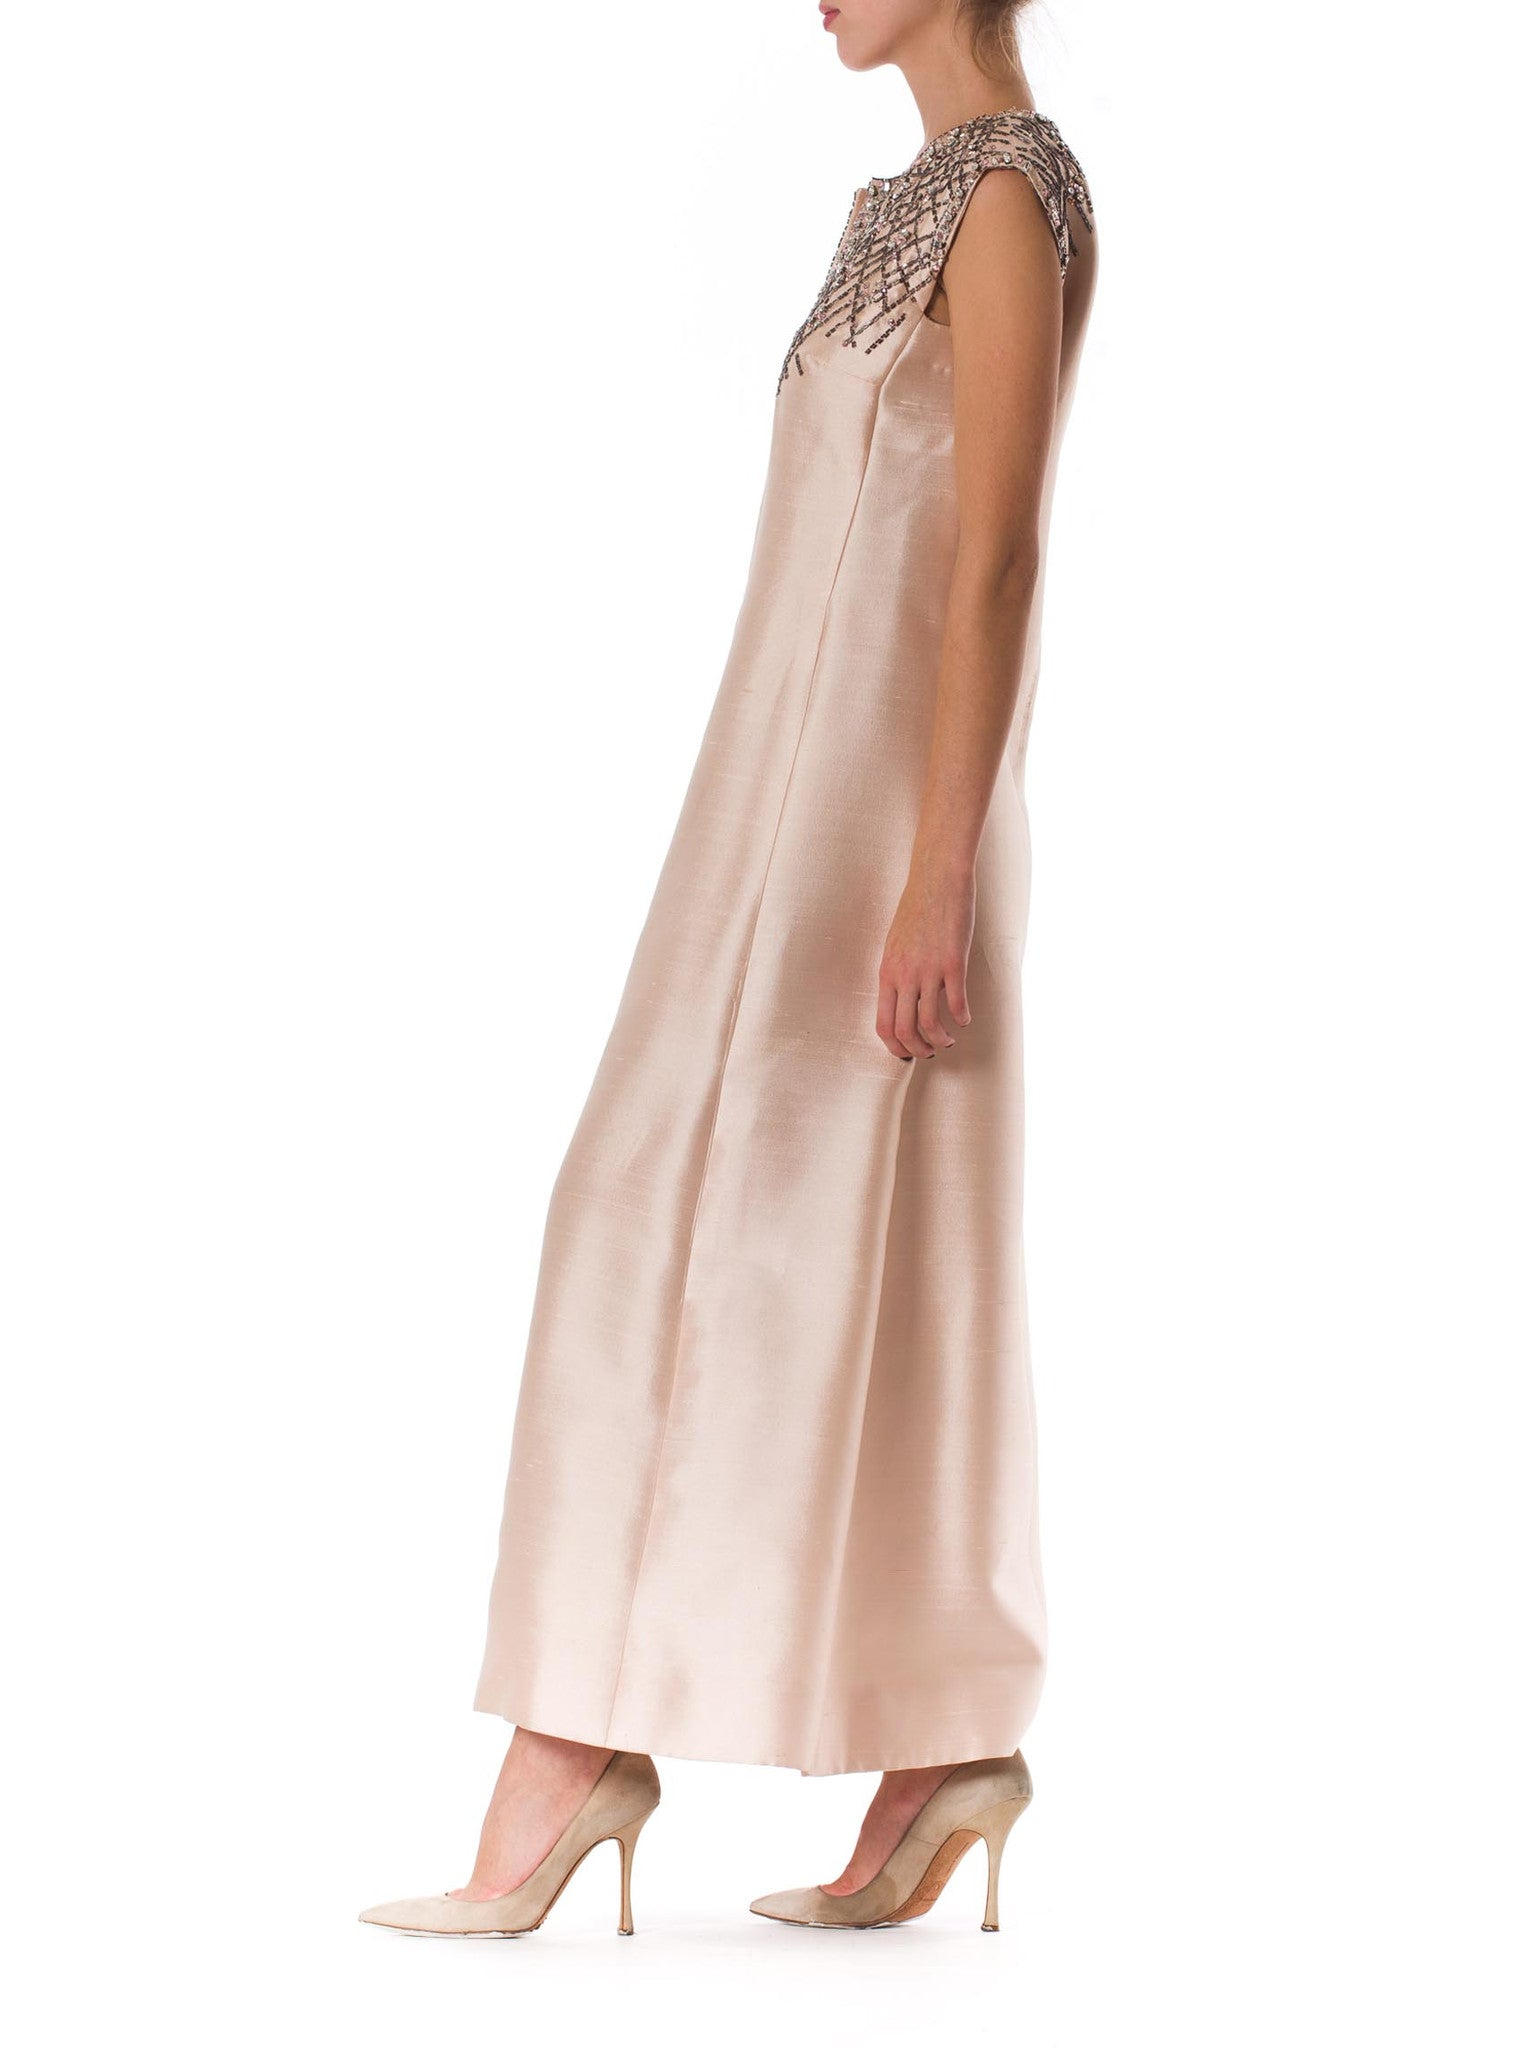 1960S CHRISTIAN DIOR Style Baby Pink Silk Blend Radzimir Crystal Encrusted Mod Gown